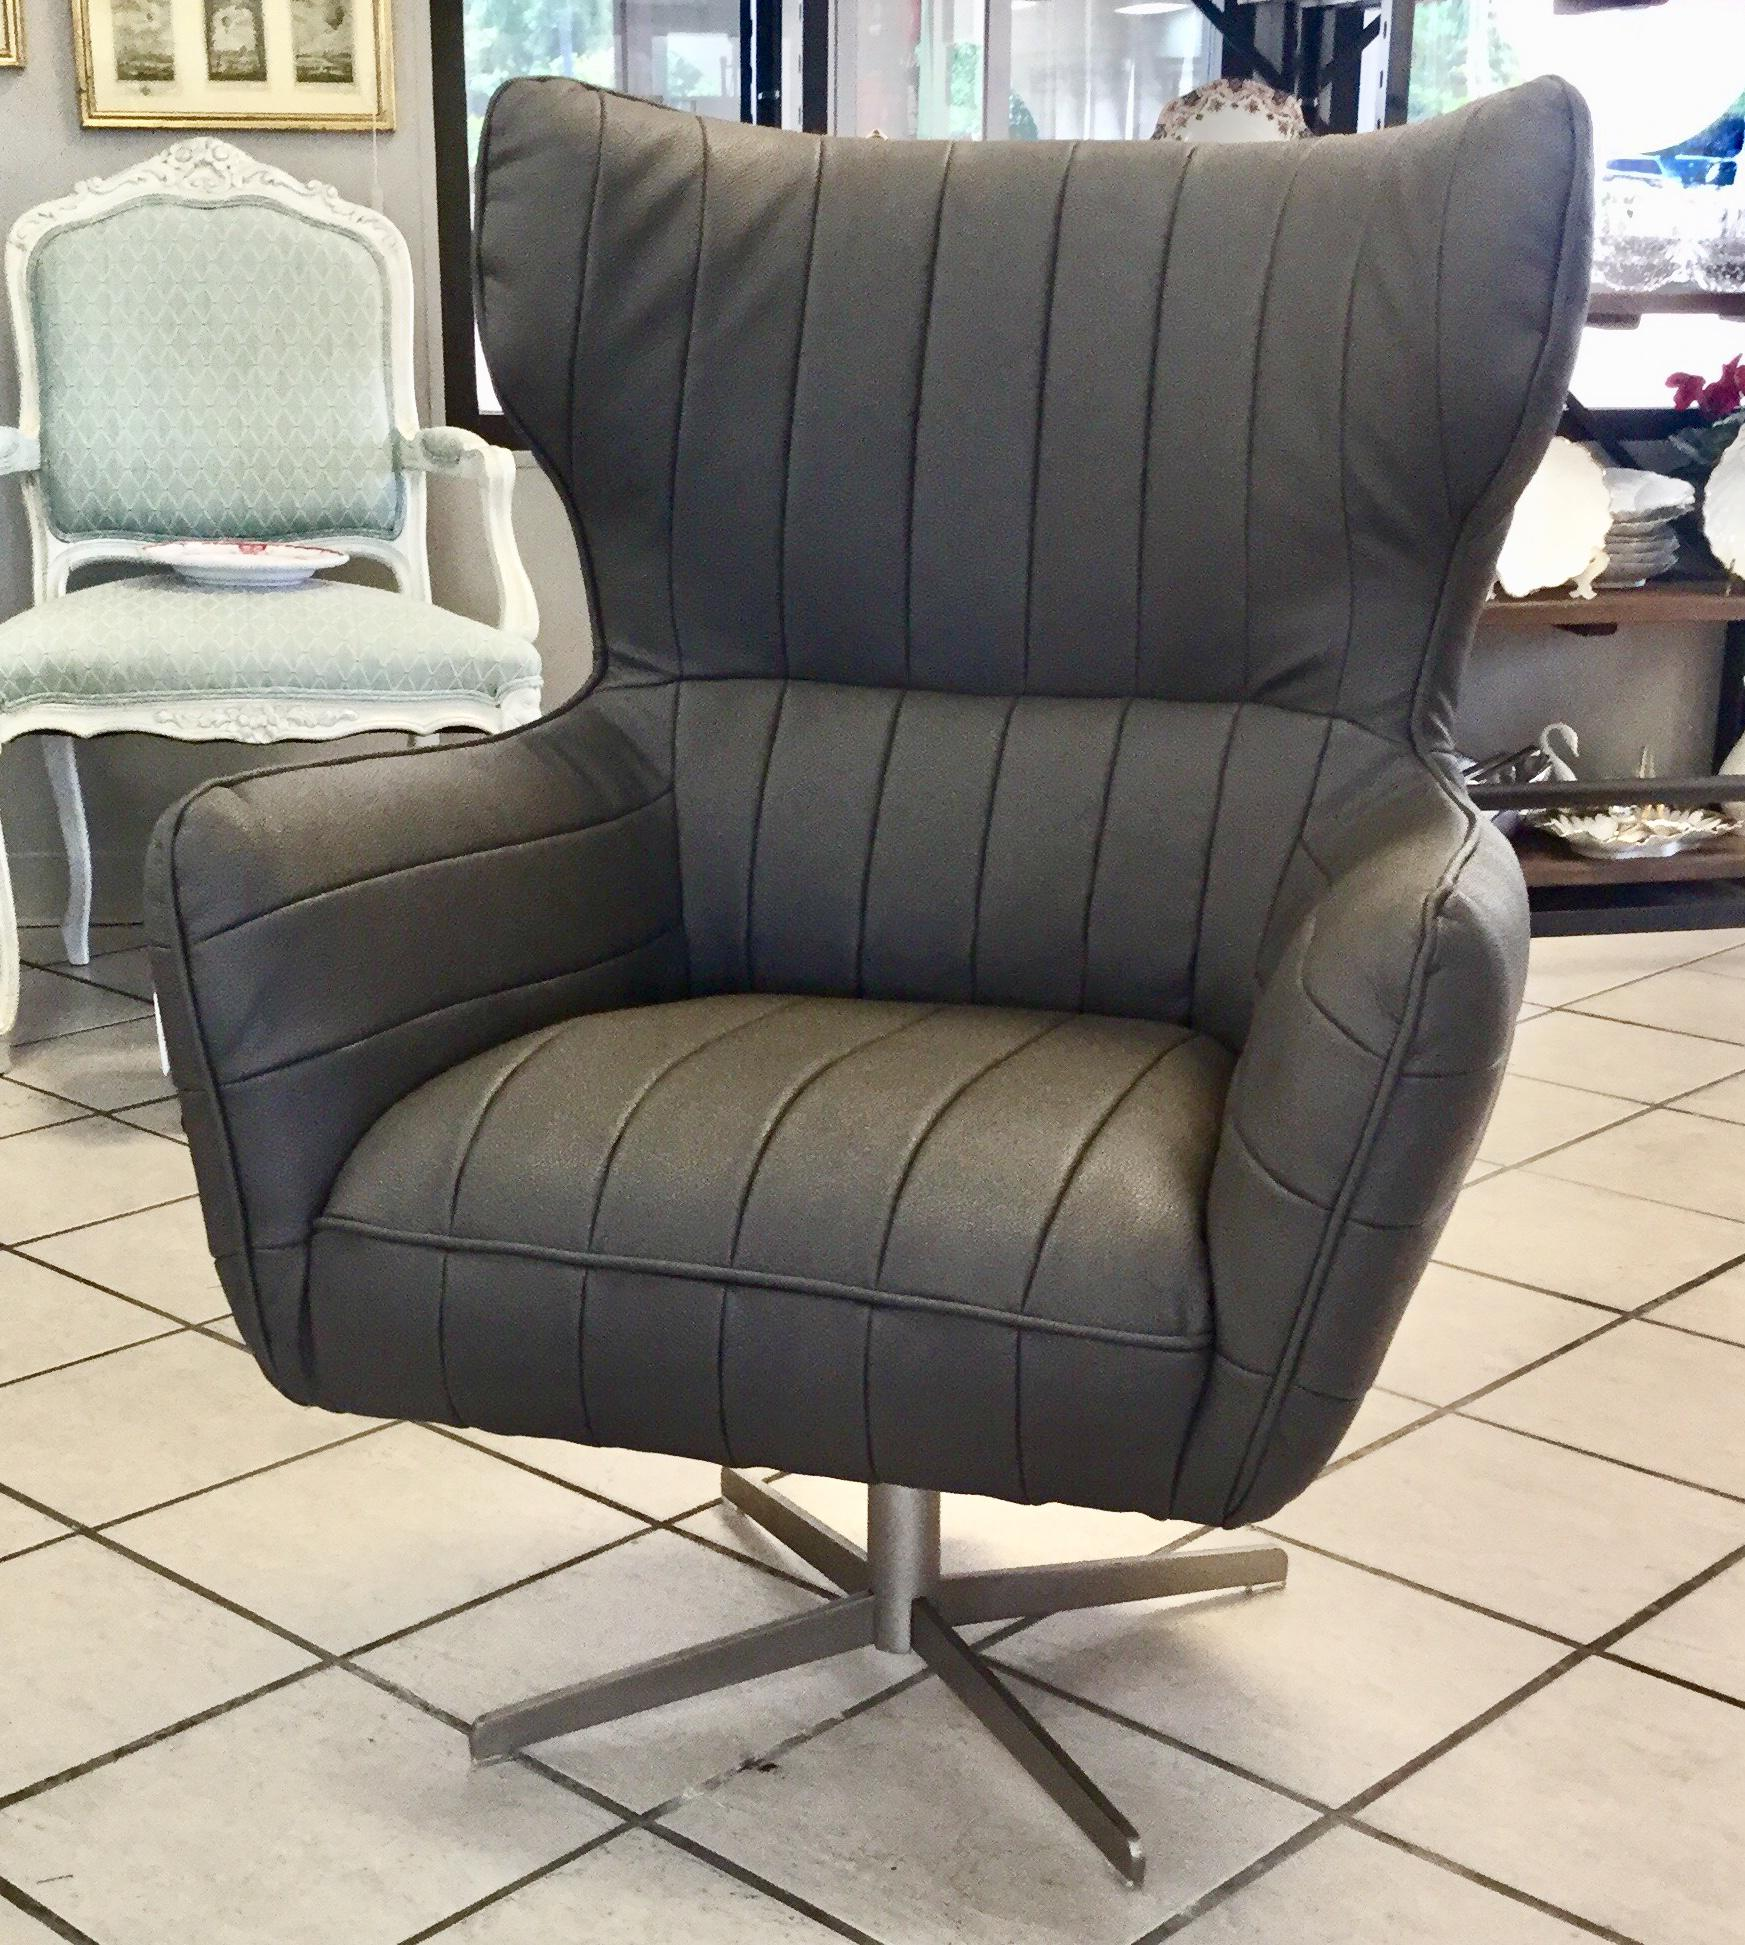 Large, Grey Leatherette Armchair Supported By A Metal Pedestal With Four  Legs. The Slight